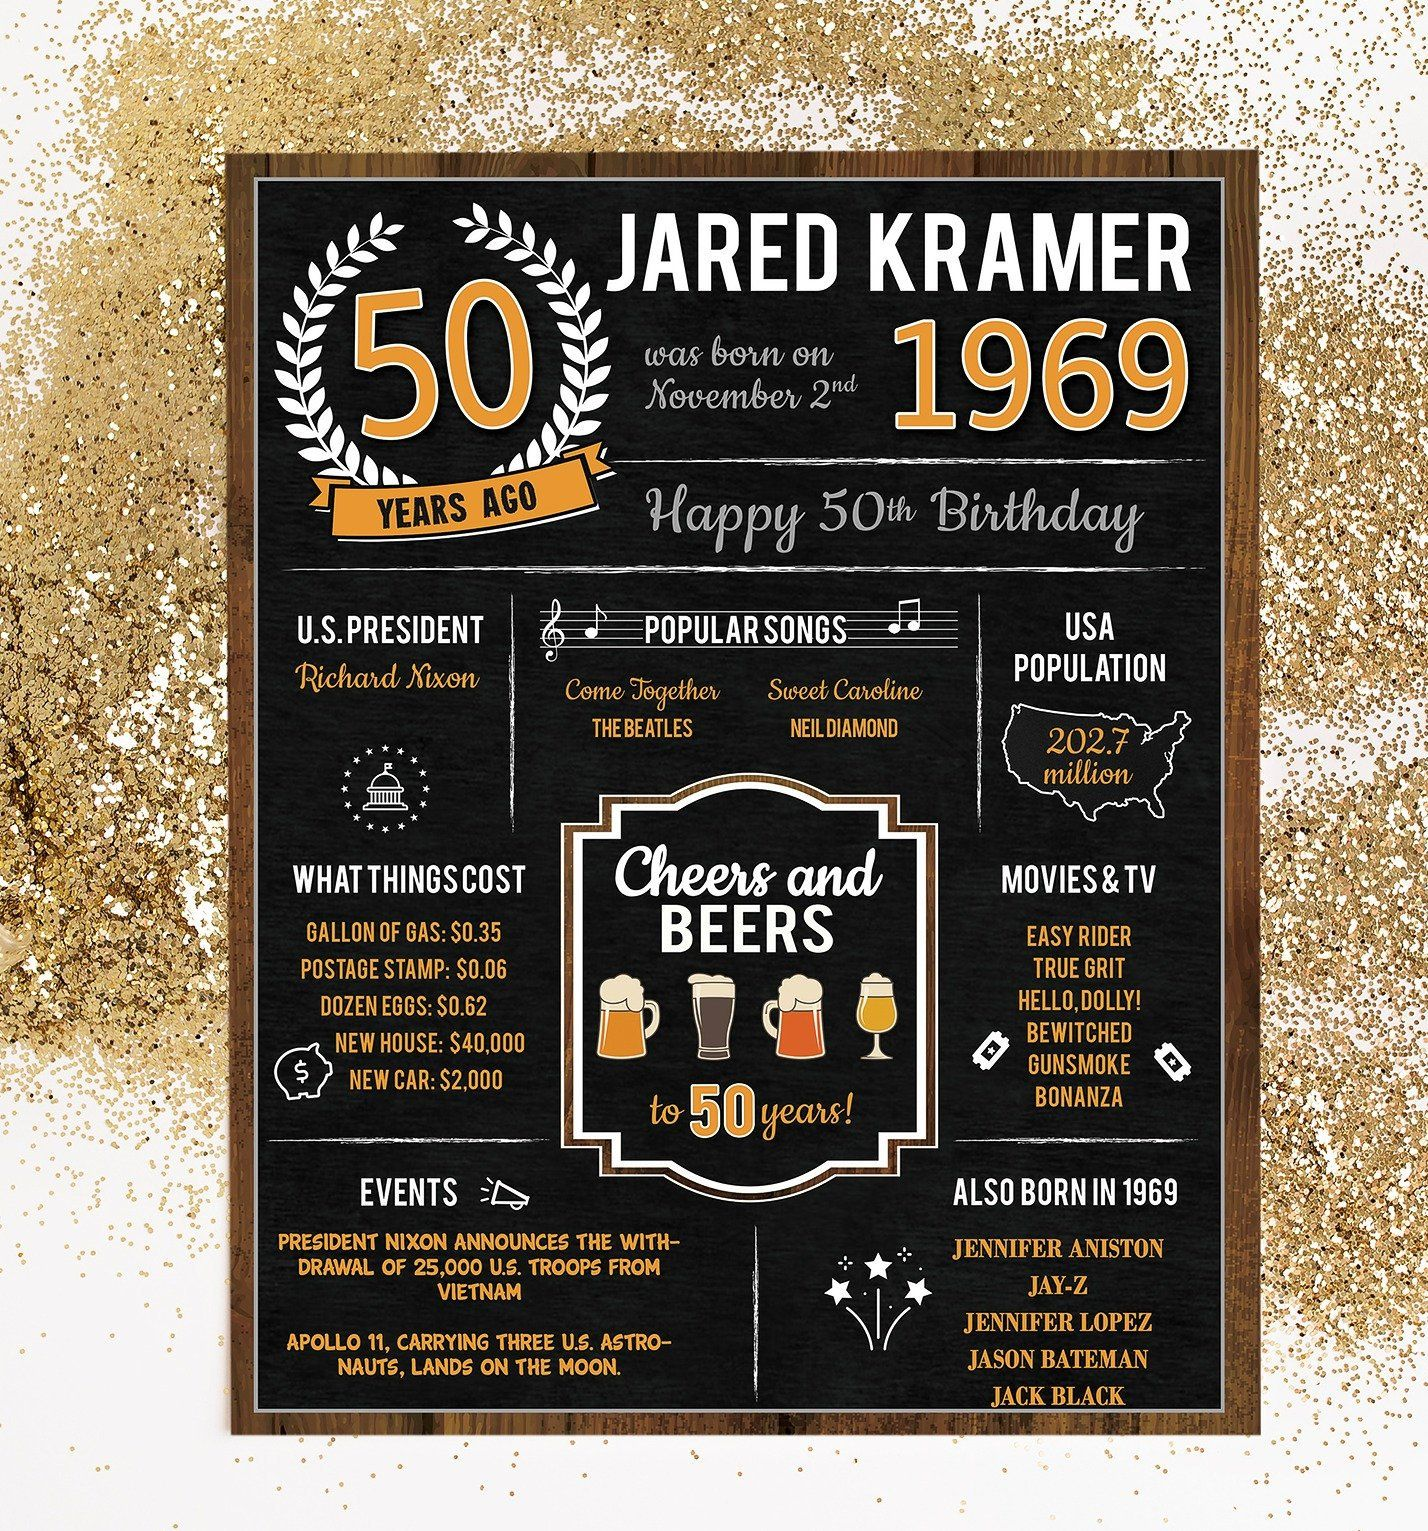 50th Birthday Vintage Dude Poster Back in 1969 Birthday Gift 50 Years Ago Decade Poster Printed Poster OR Printable Milestone Birthday